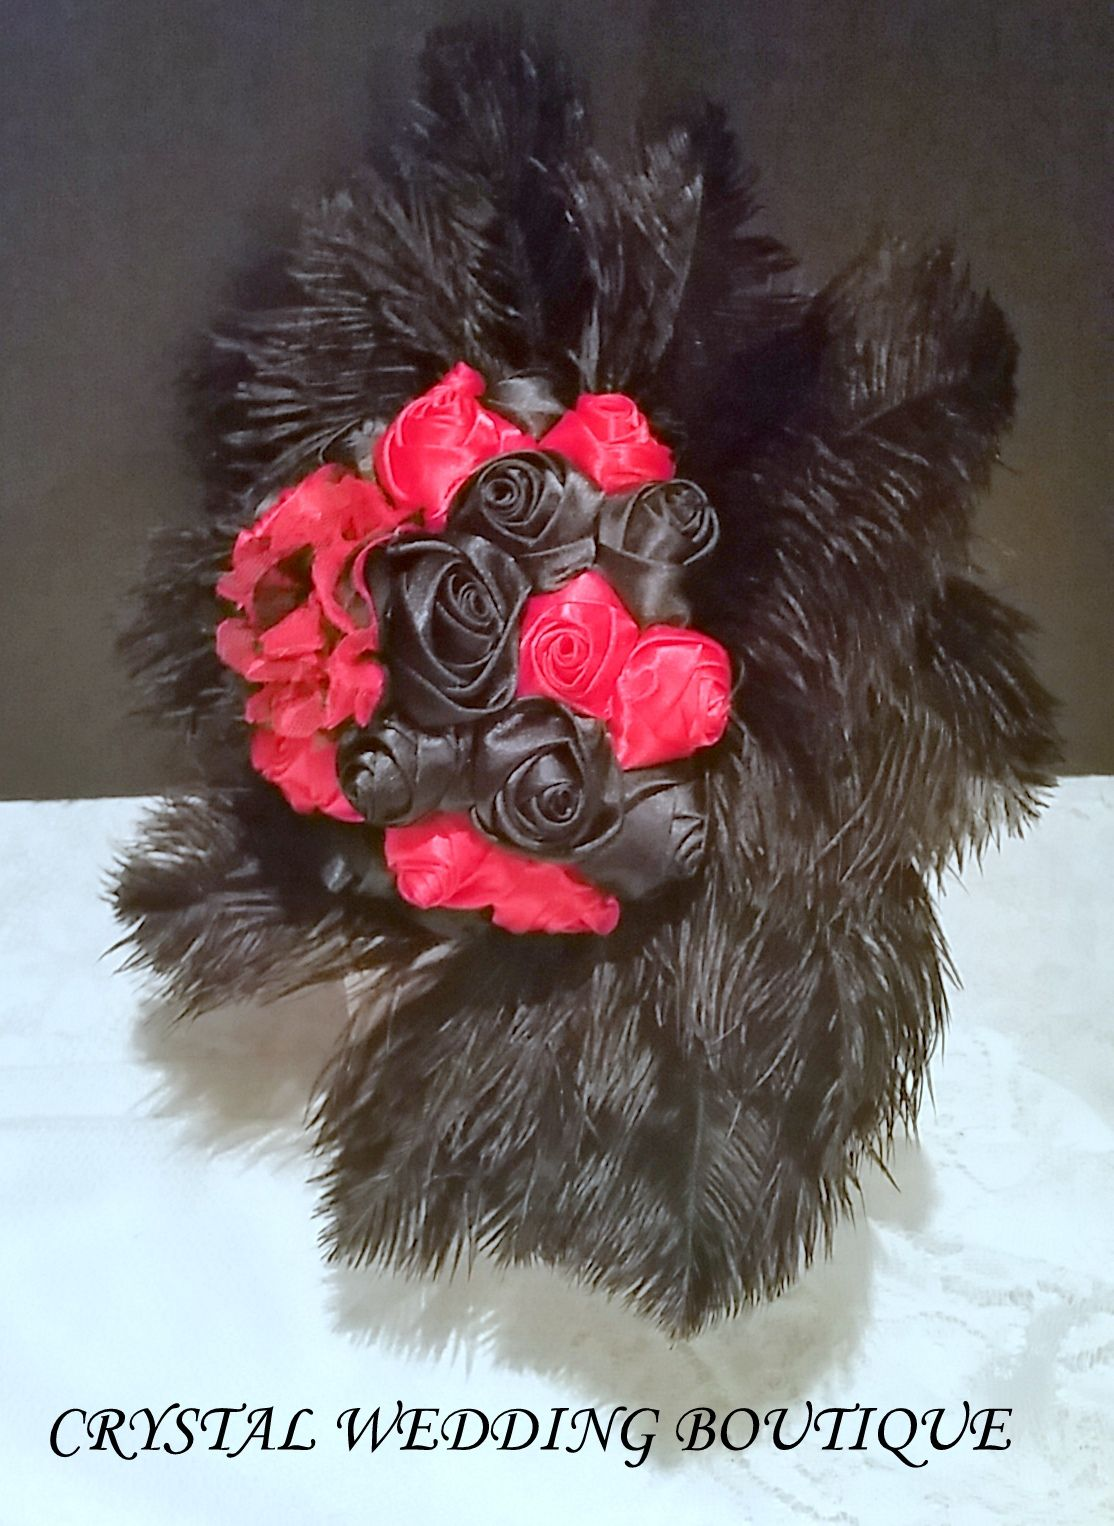 Red and black satin rolled roses with chiffon flowers surrounded by ostrich feathers